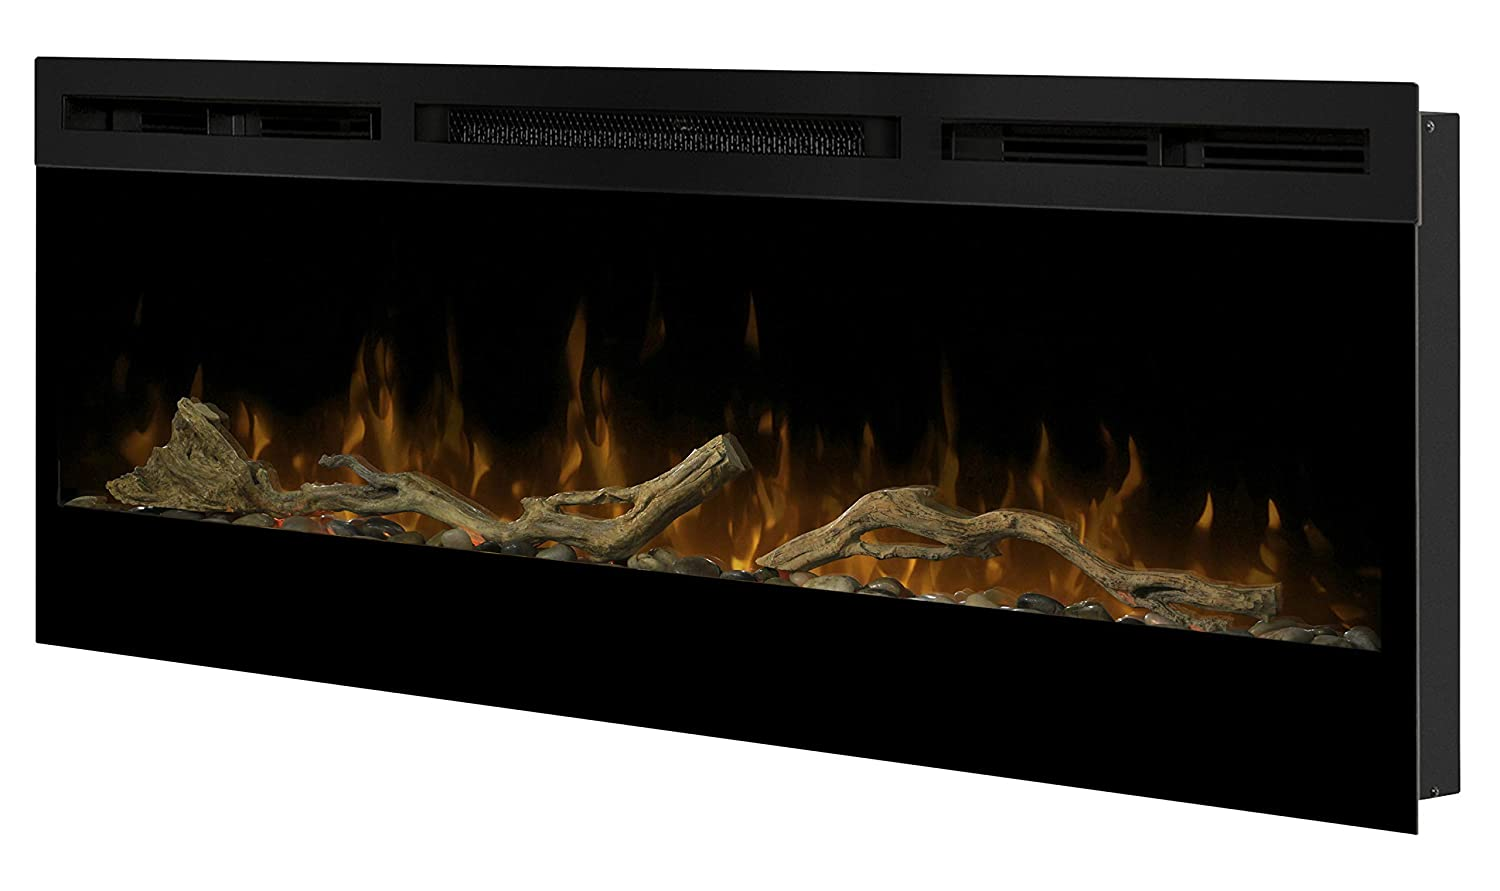 DIMPLEX North America LF50DWS-KIT Prism Electric Fireplace, Brown